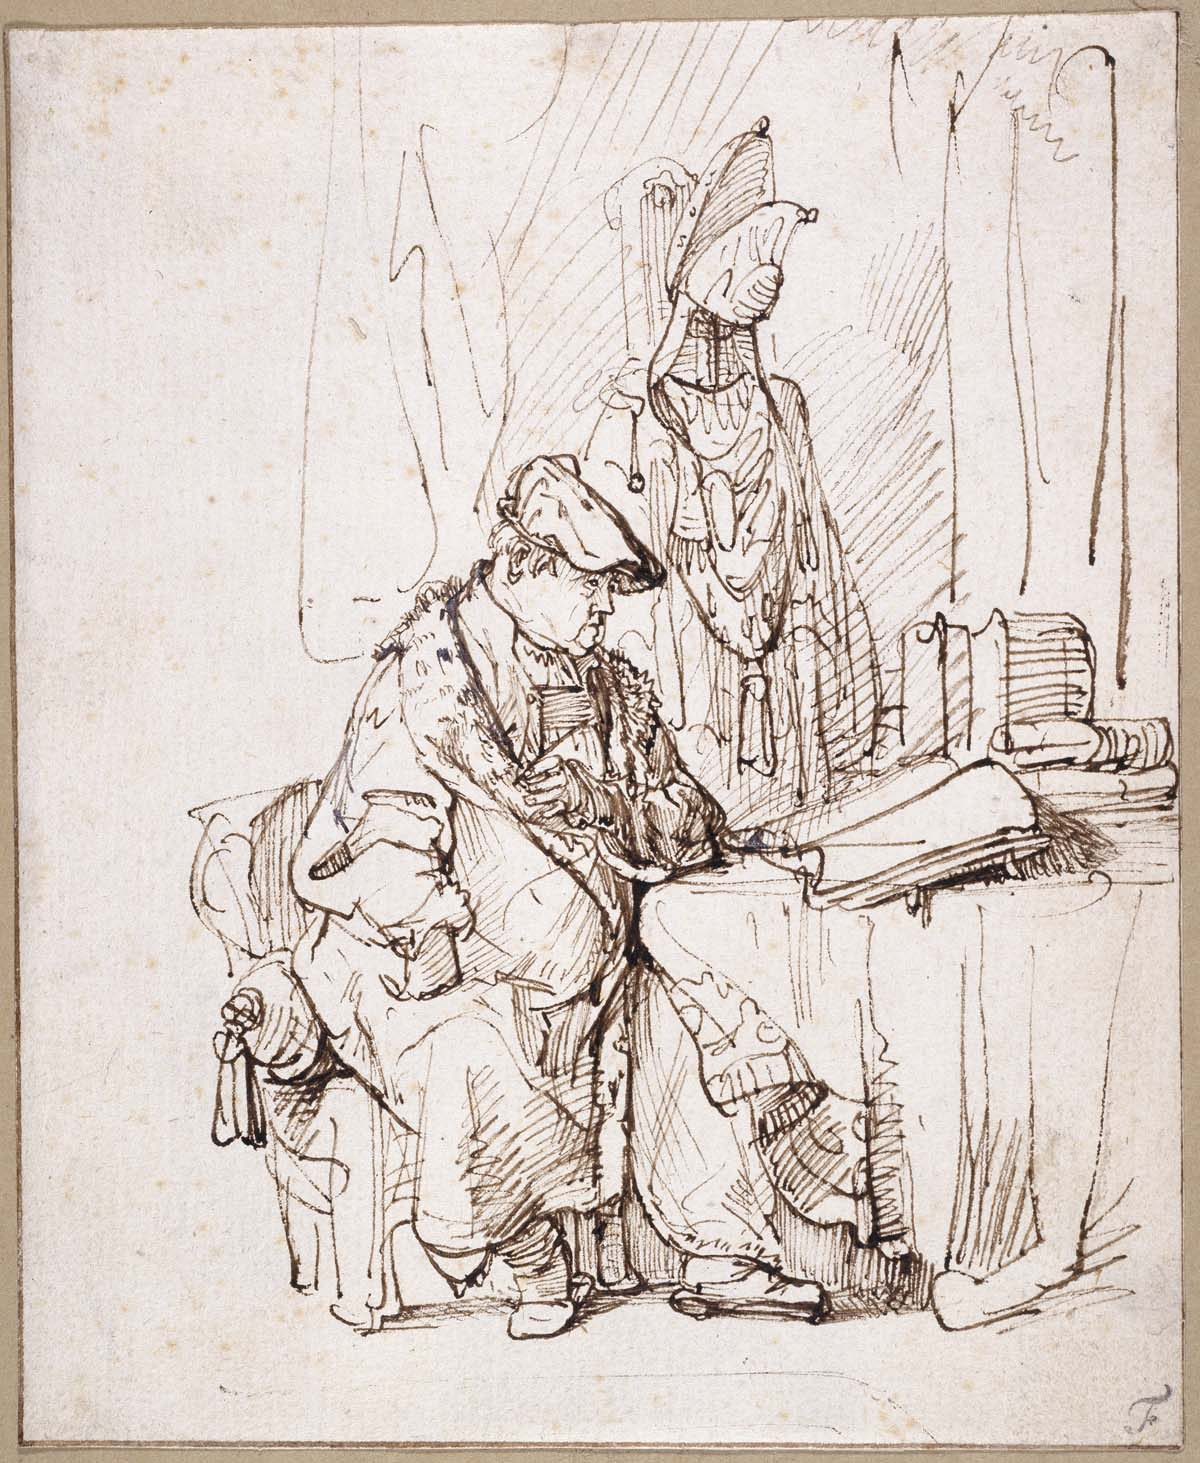 pencil sketch of alrge man in a dressing gown seated at a table